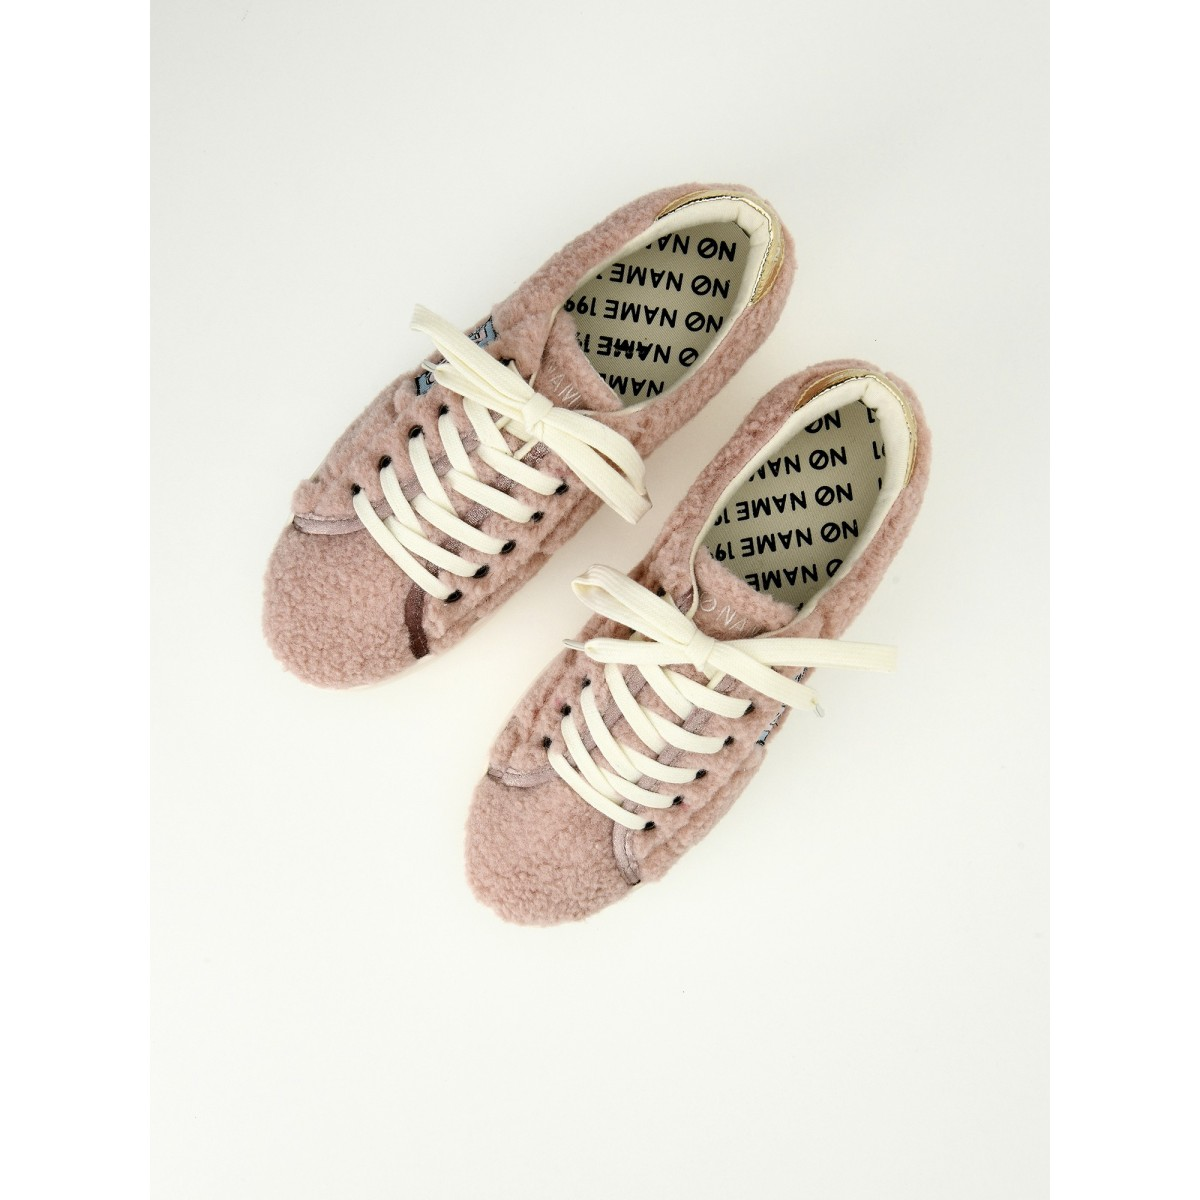 No Name PLATO SNEAKER - SHAUN/PATCH - PINK/BLUE